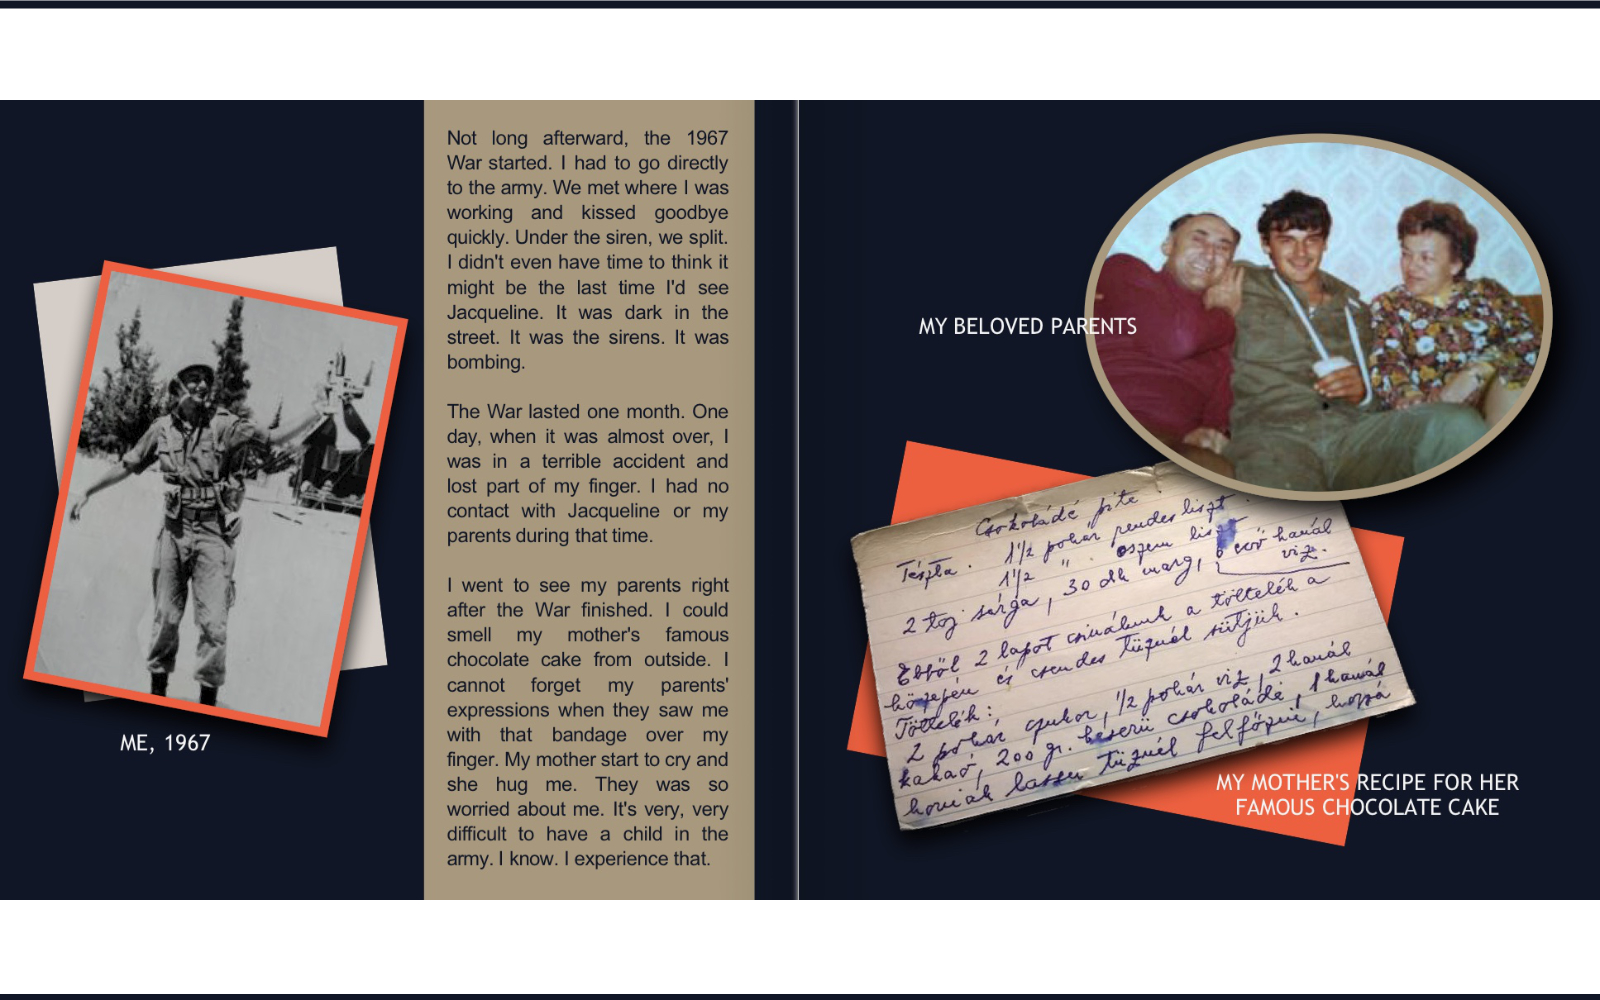 Book layout showing picture of soldier, family and recipe card.